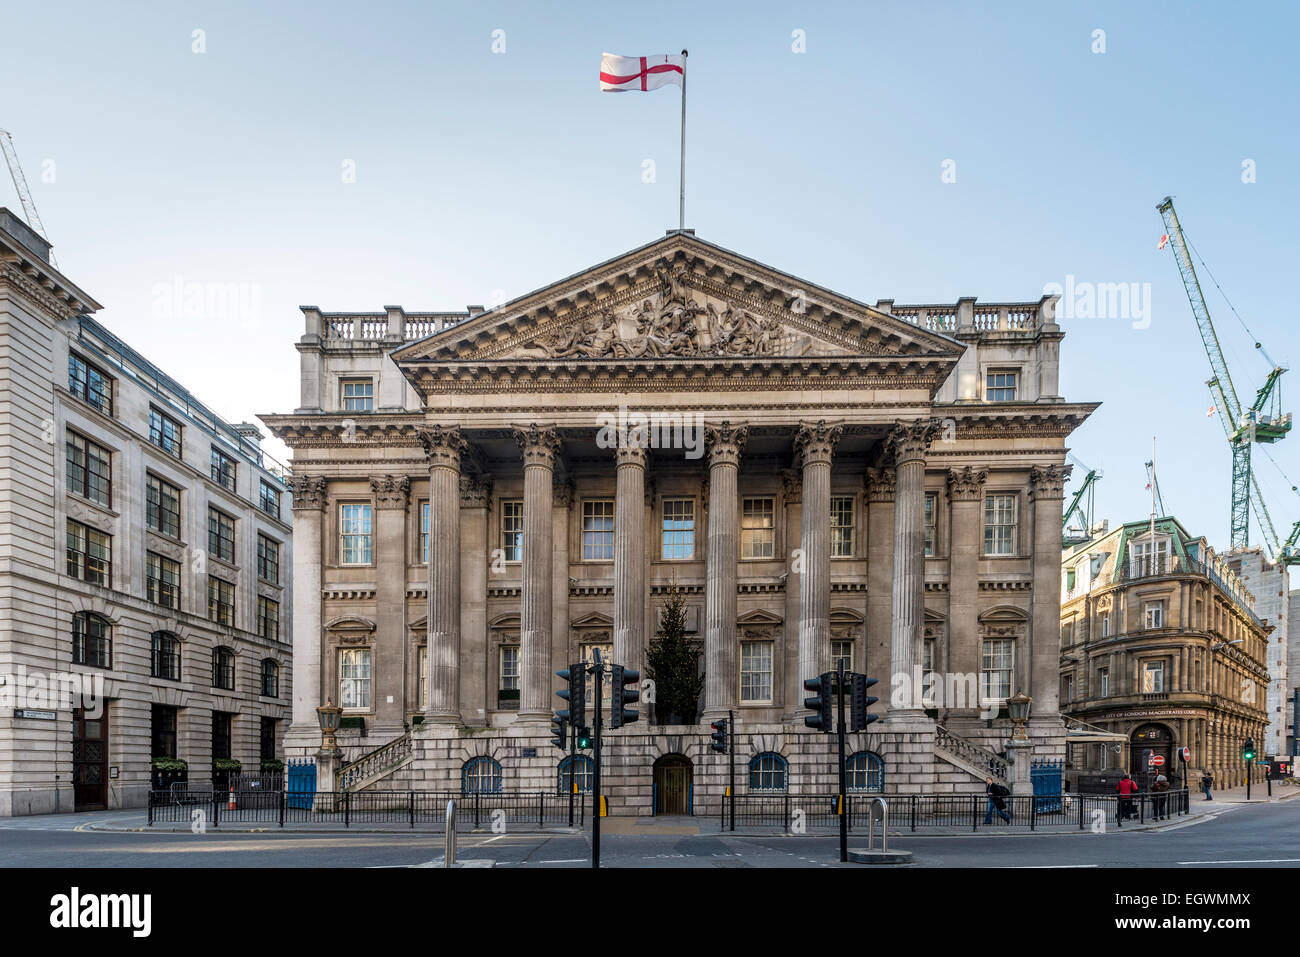 The Mansion House is the official residence of the Lord Mayor of London and is used for the City of London's - Stock Image